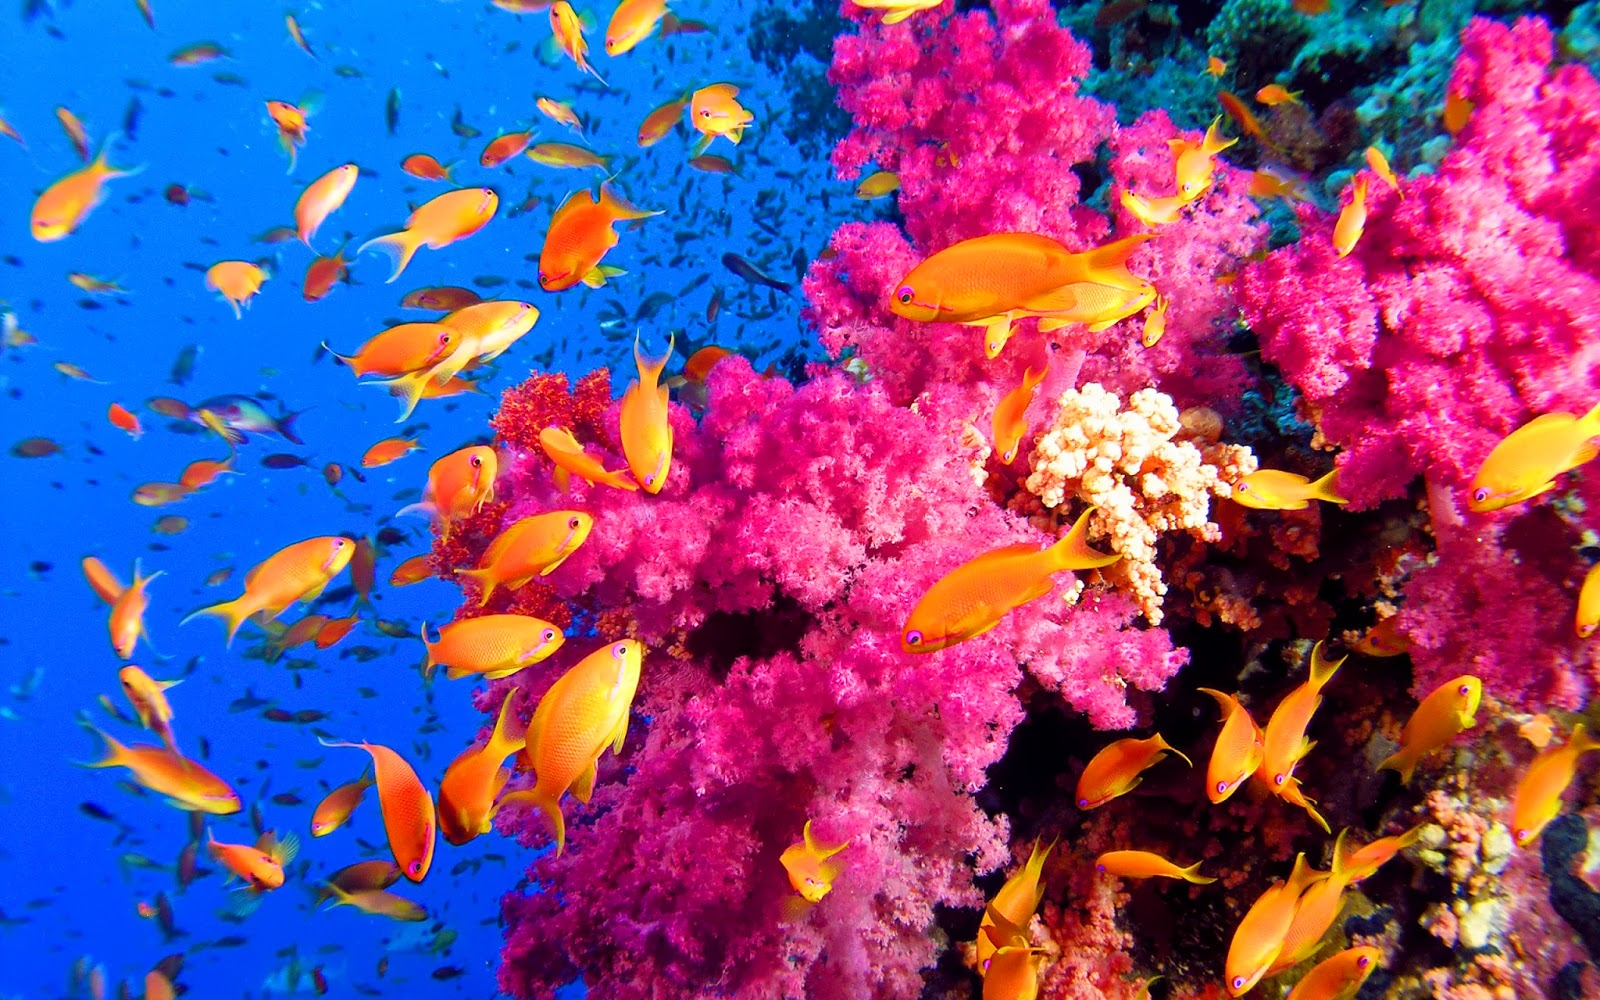 coral reef photos on pinterest coral reefs macros and coral